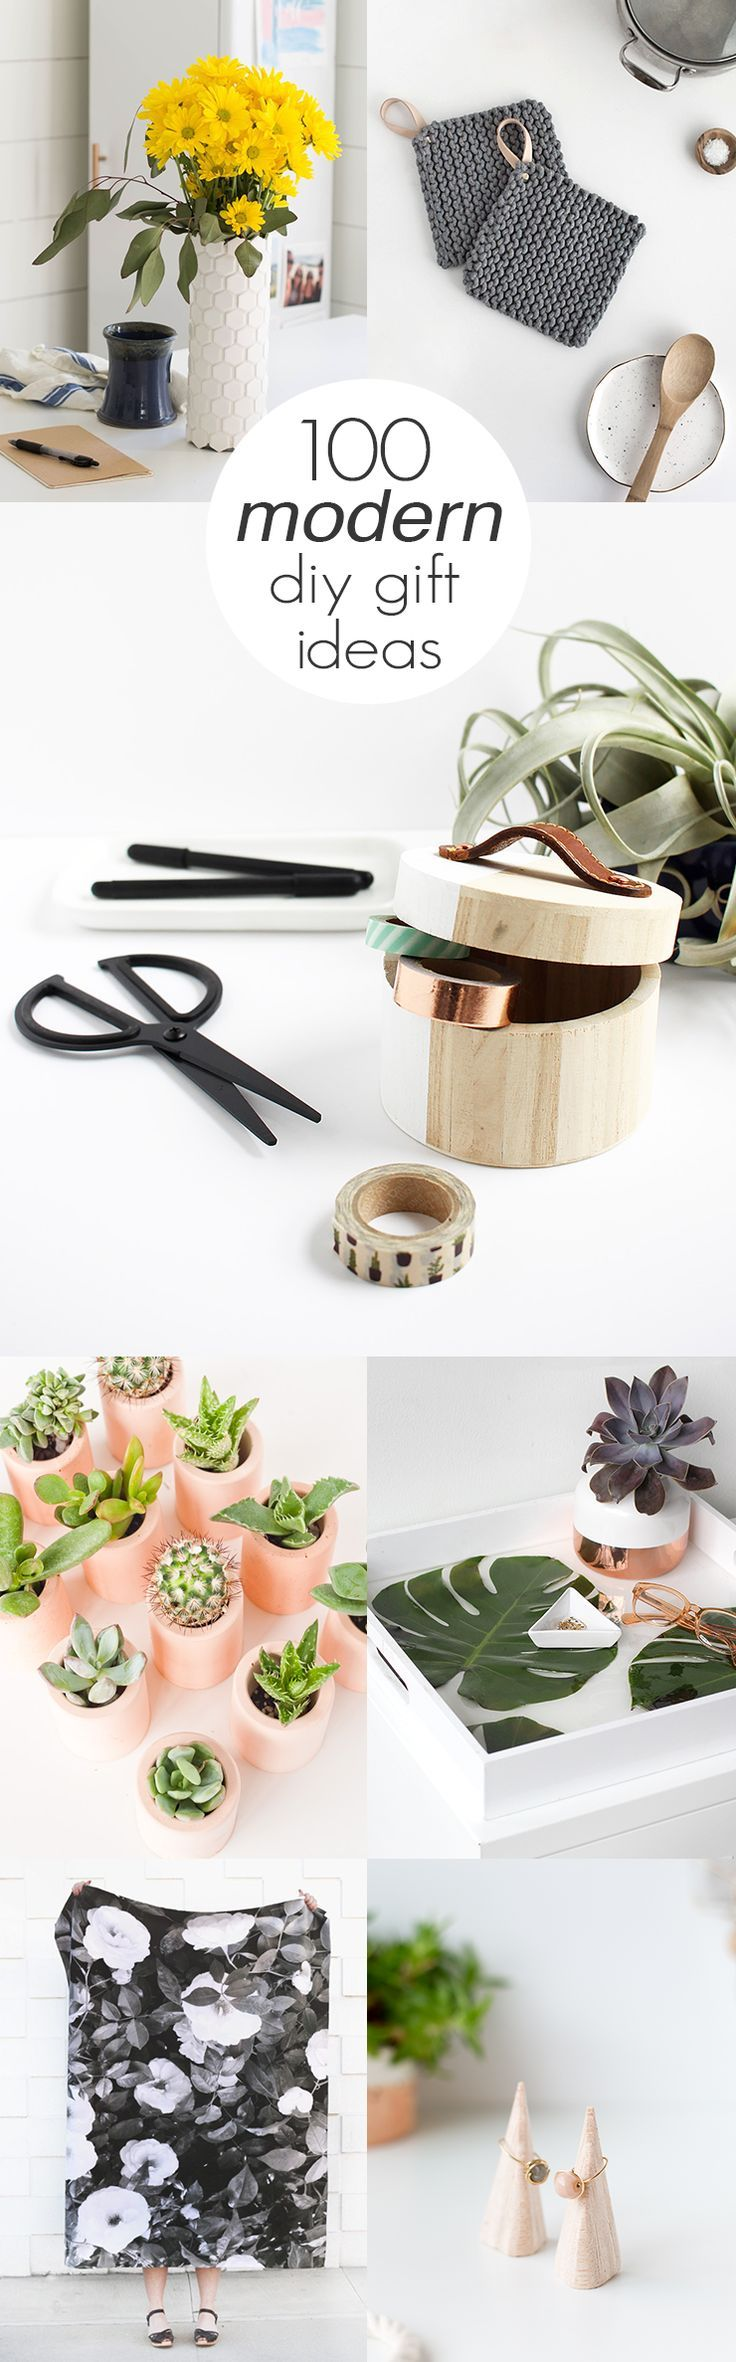 It's December but there's still time for handmade gifts! Check out these 100 modern DIY gift ideas for inspiration.